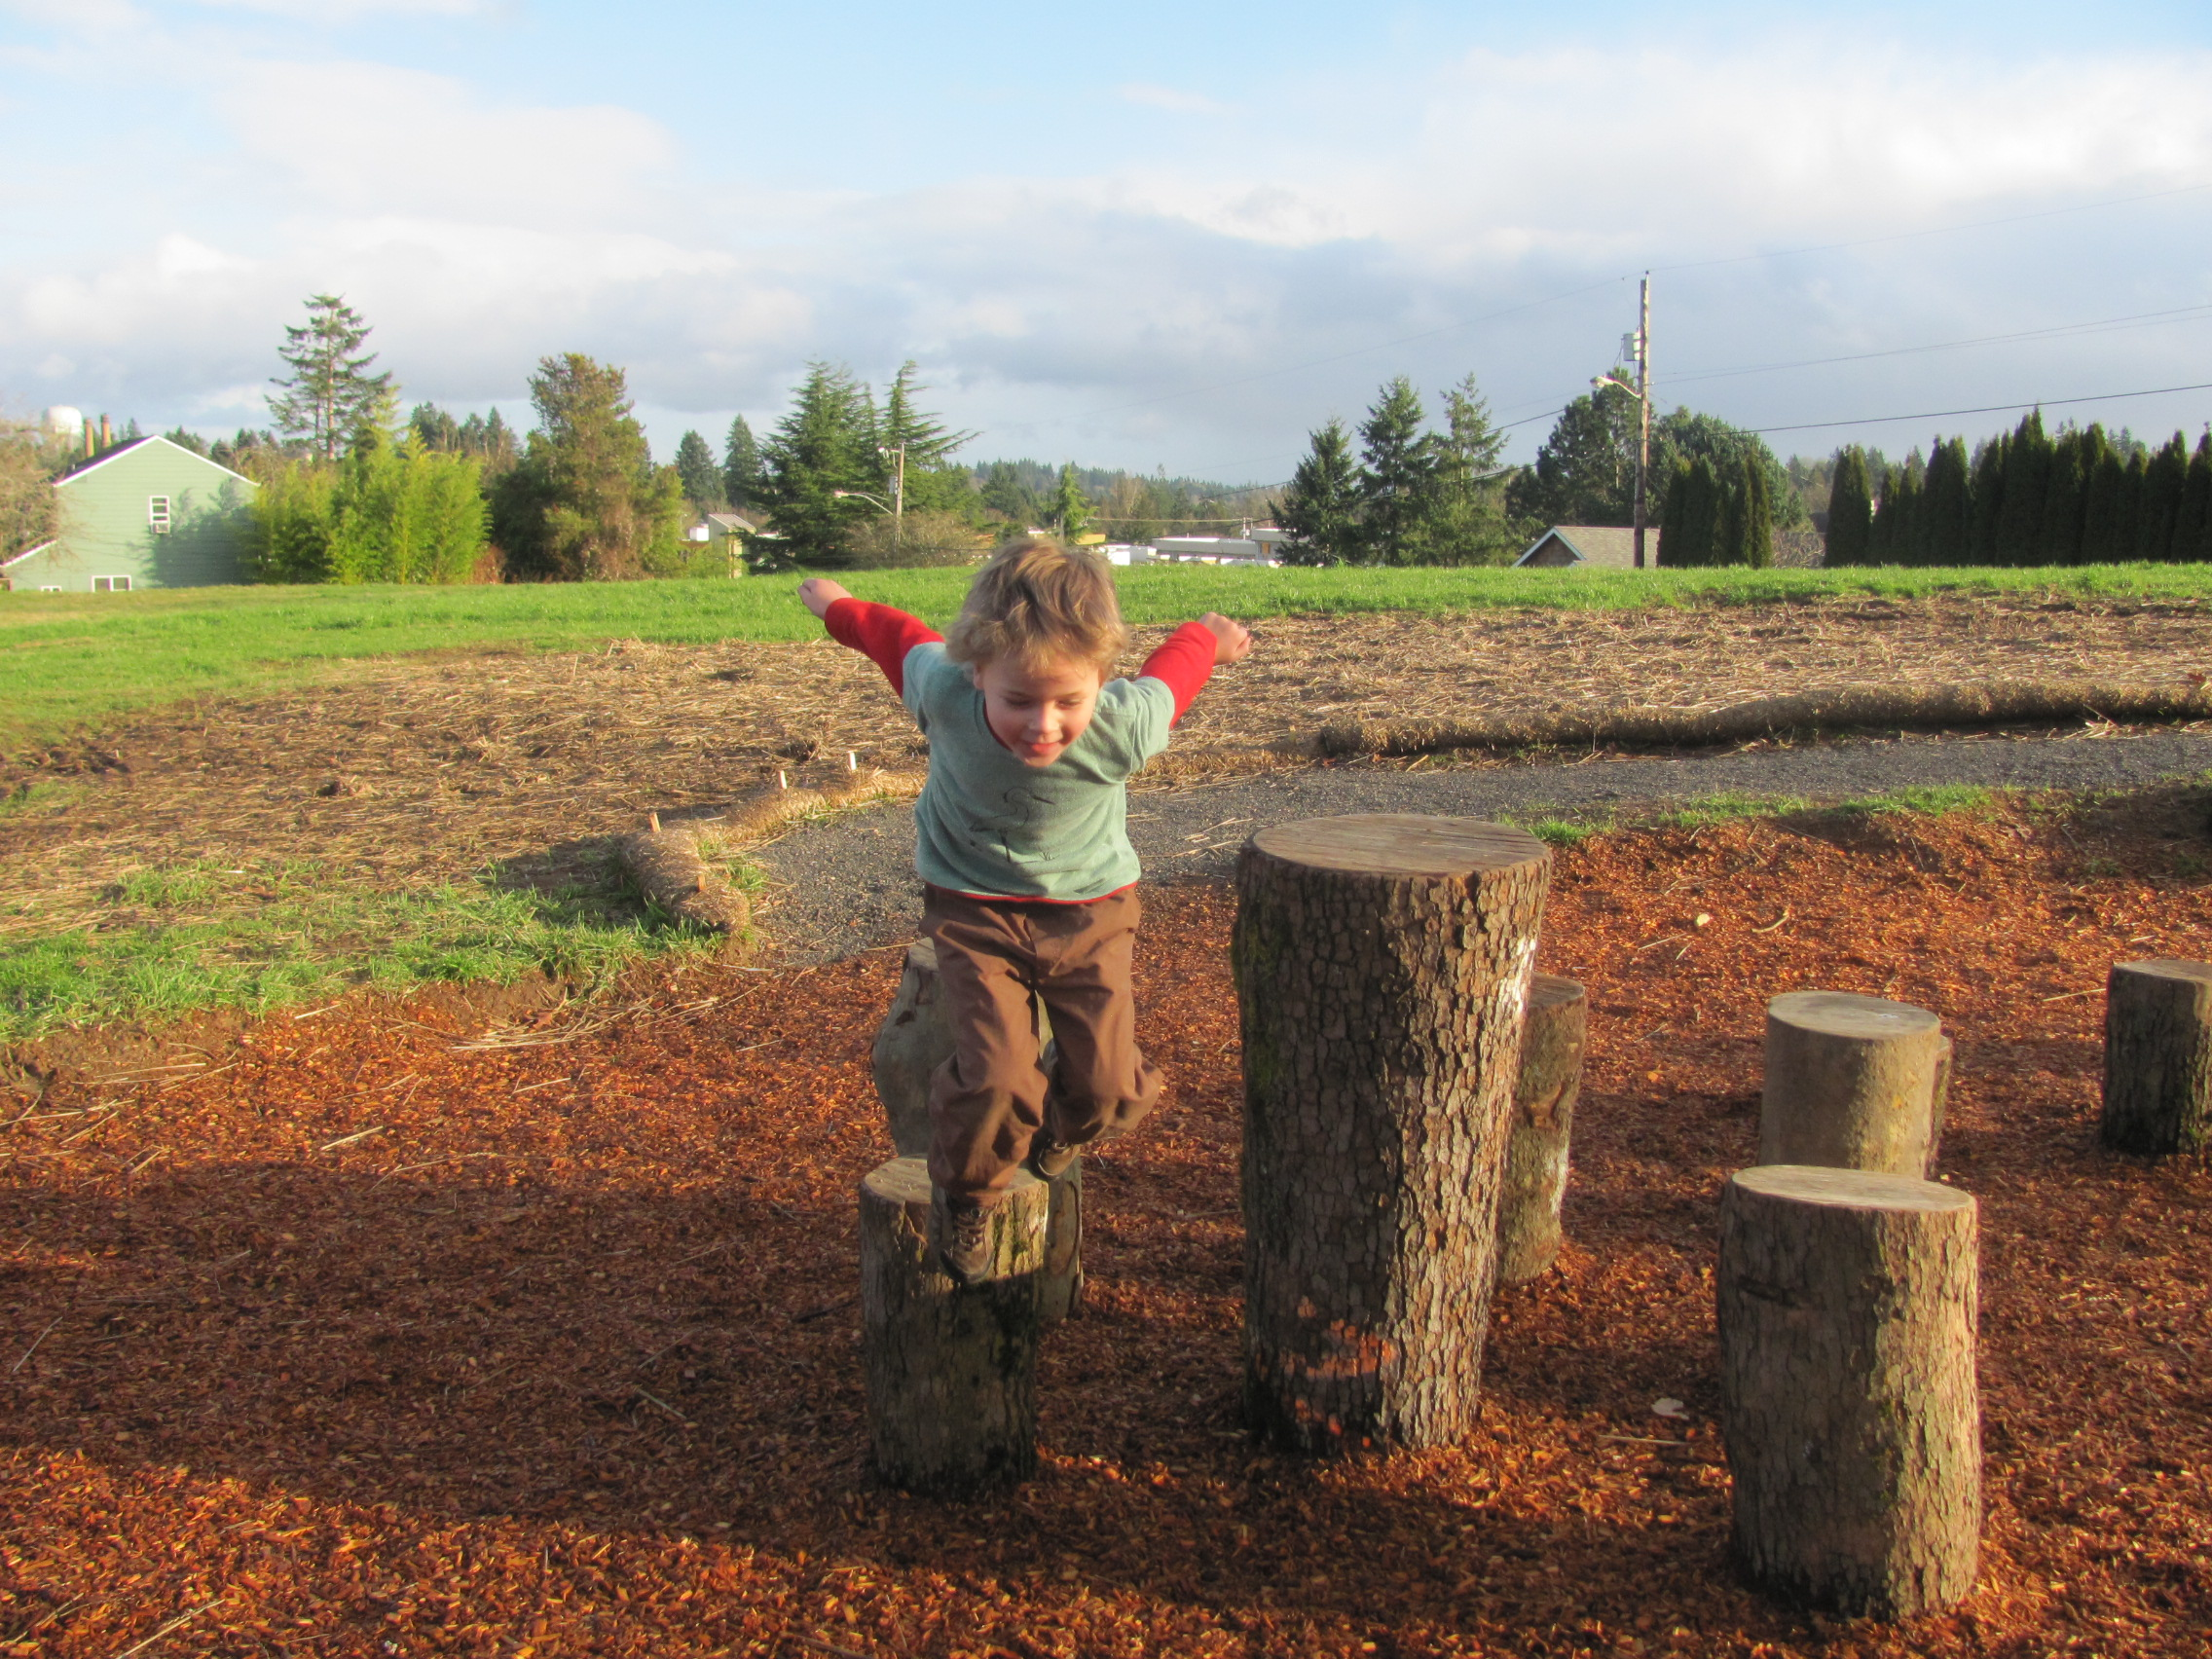 Fun things to do in portland 5 secret pdx playgrounds for Portland spring home and garden show